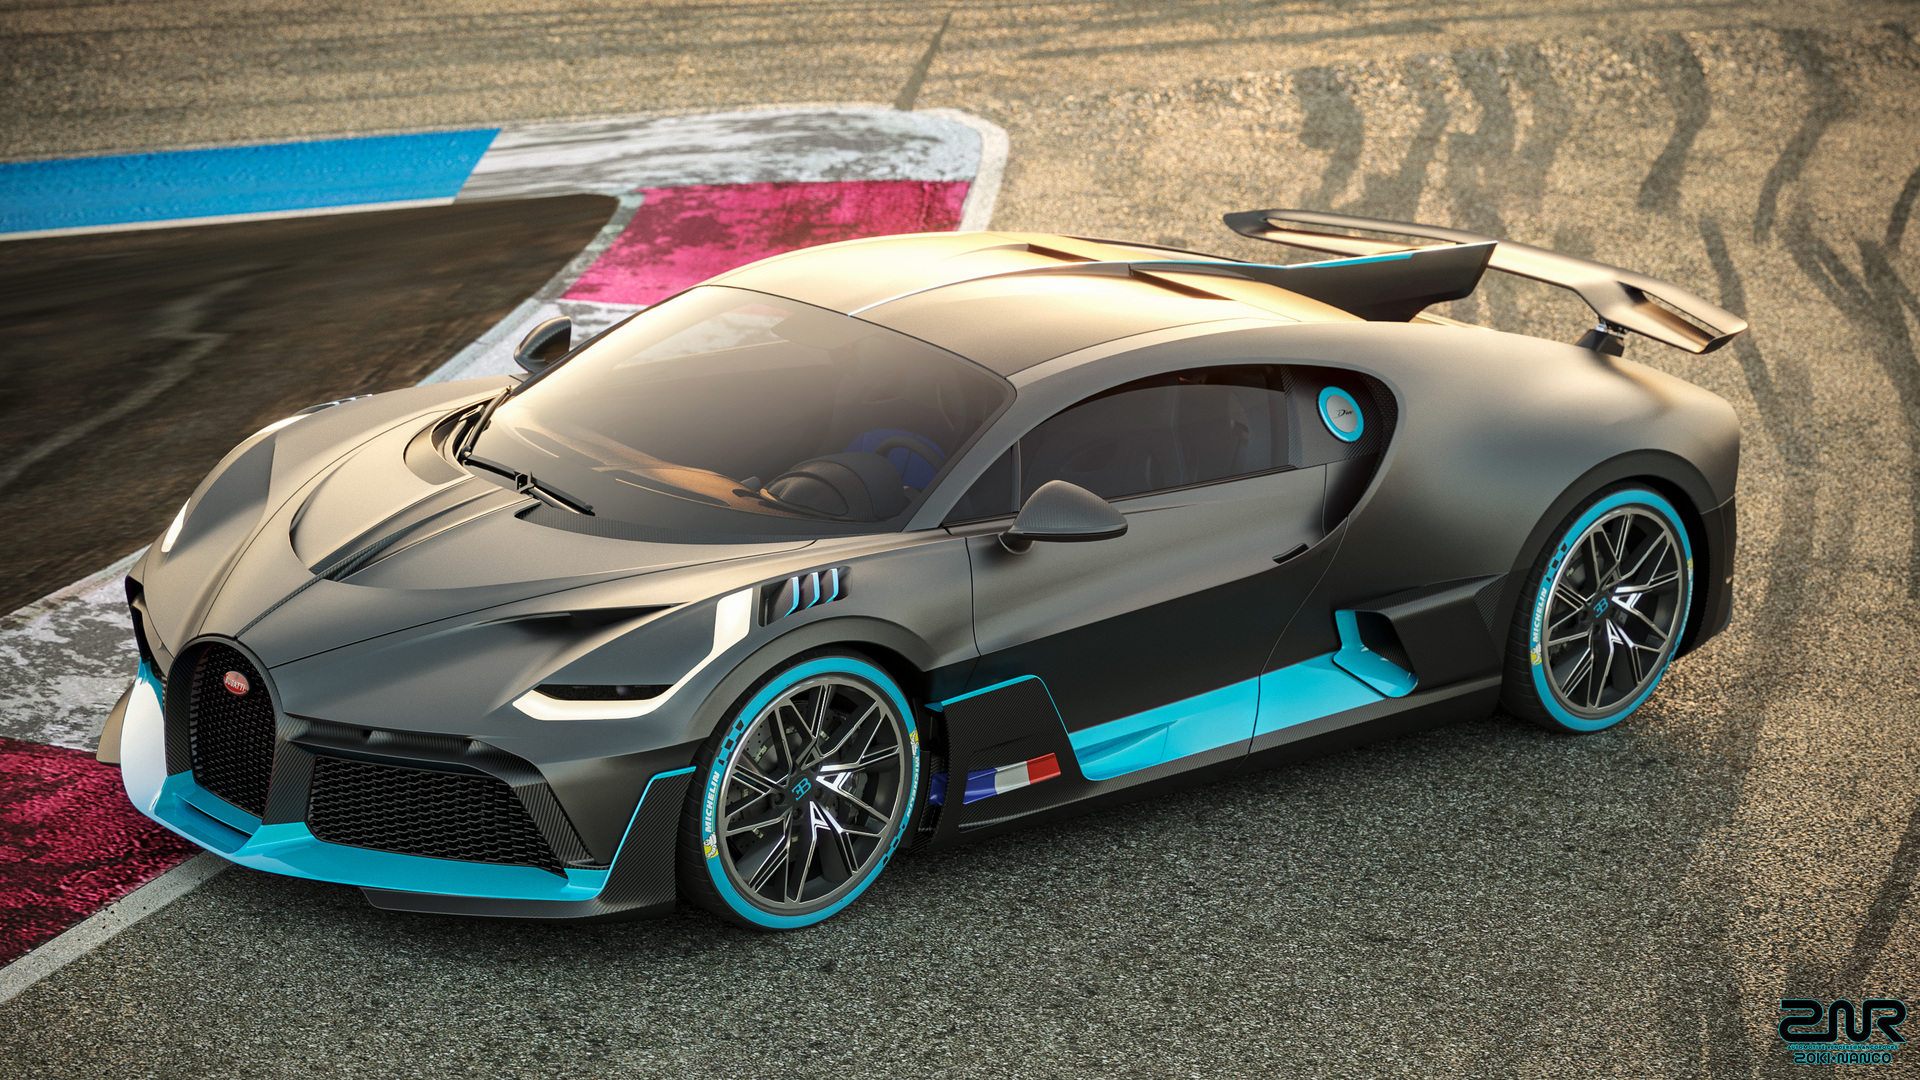 1920x1080 2018 Bugatti Divo Car Laptop Full Hd 1080p Hd 4k Wallpapers Images Backgrounds Photos And Pictures